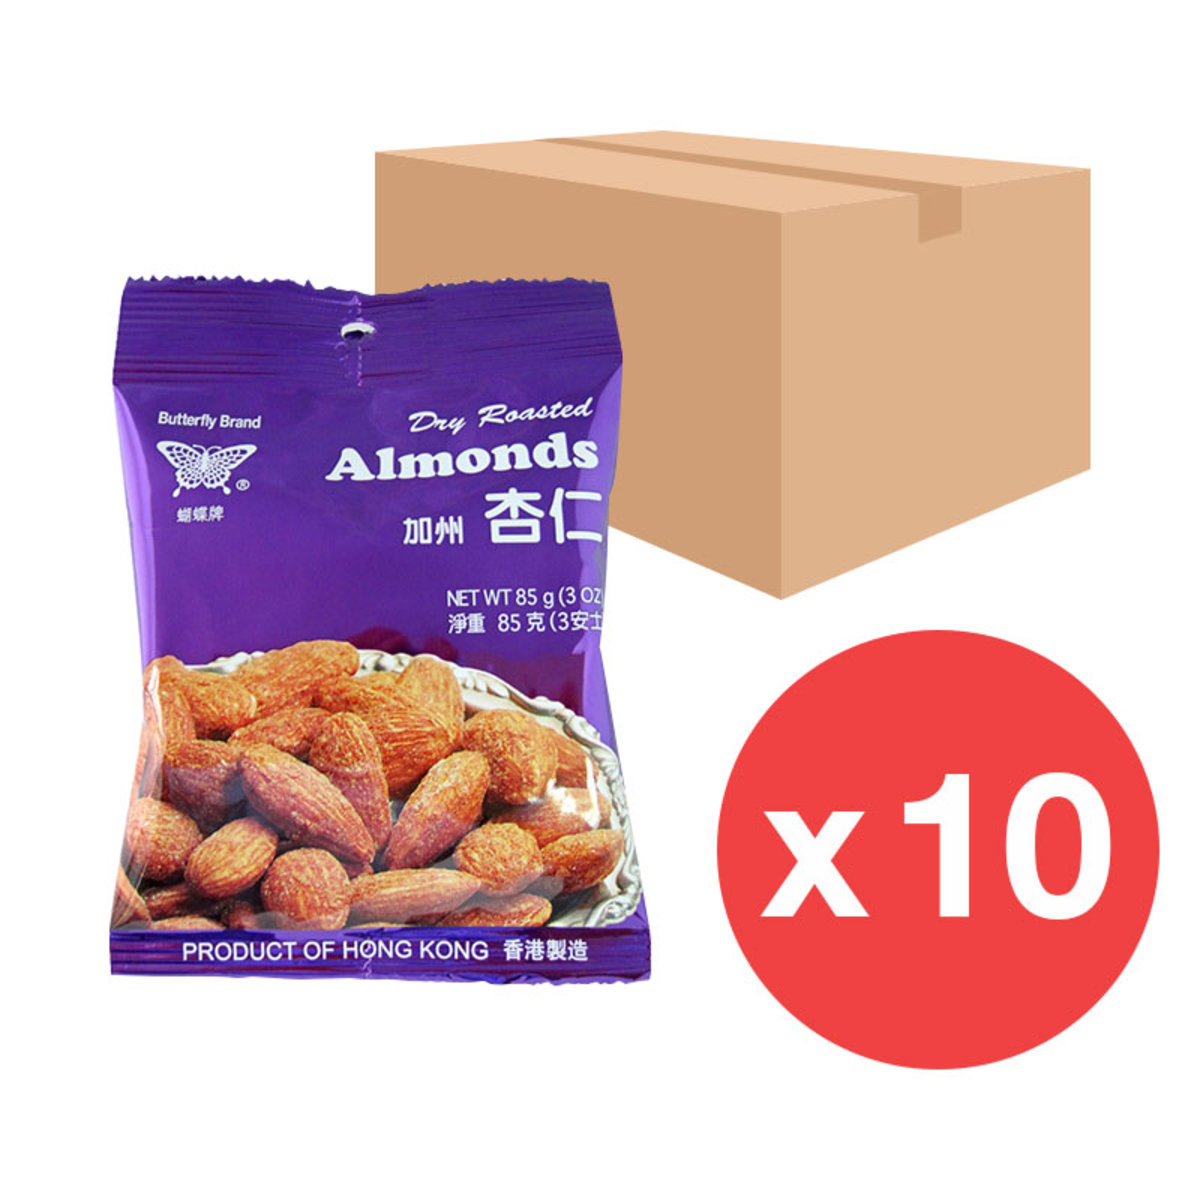 [Full case 10 bags] Dry Roasted Almonds